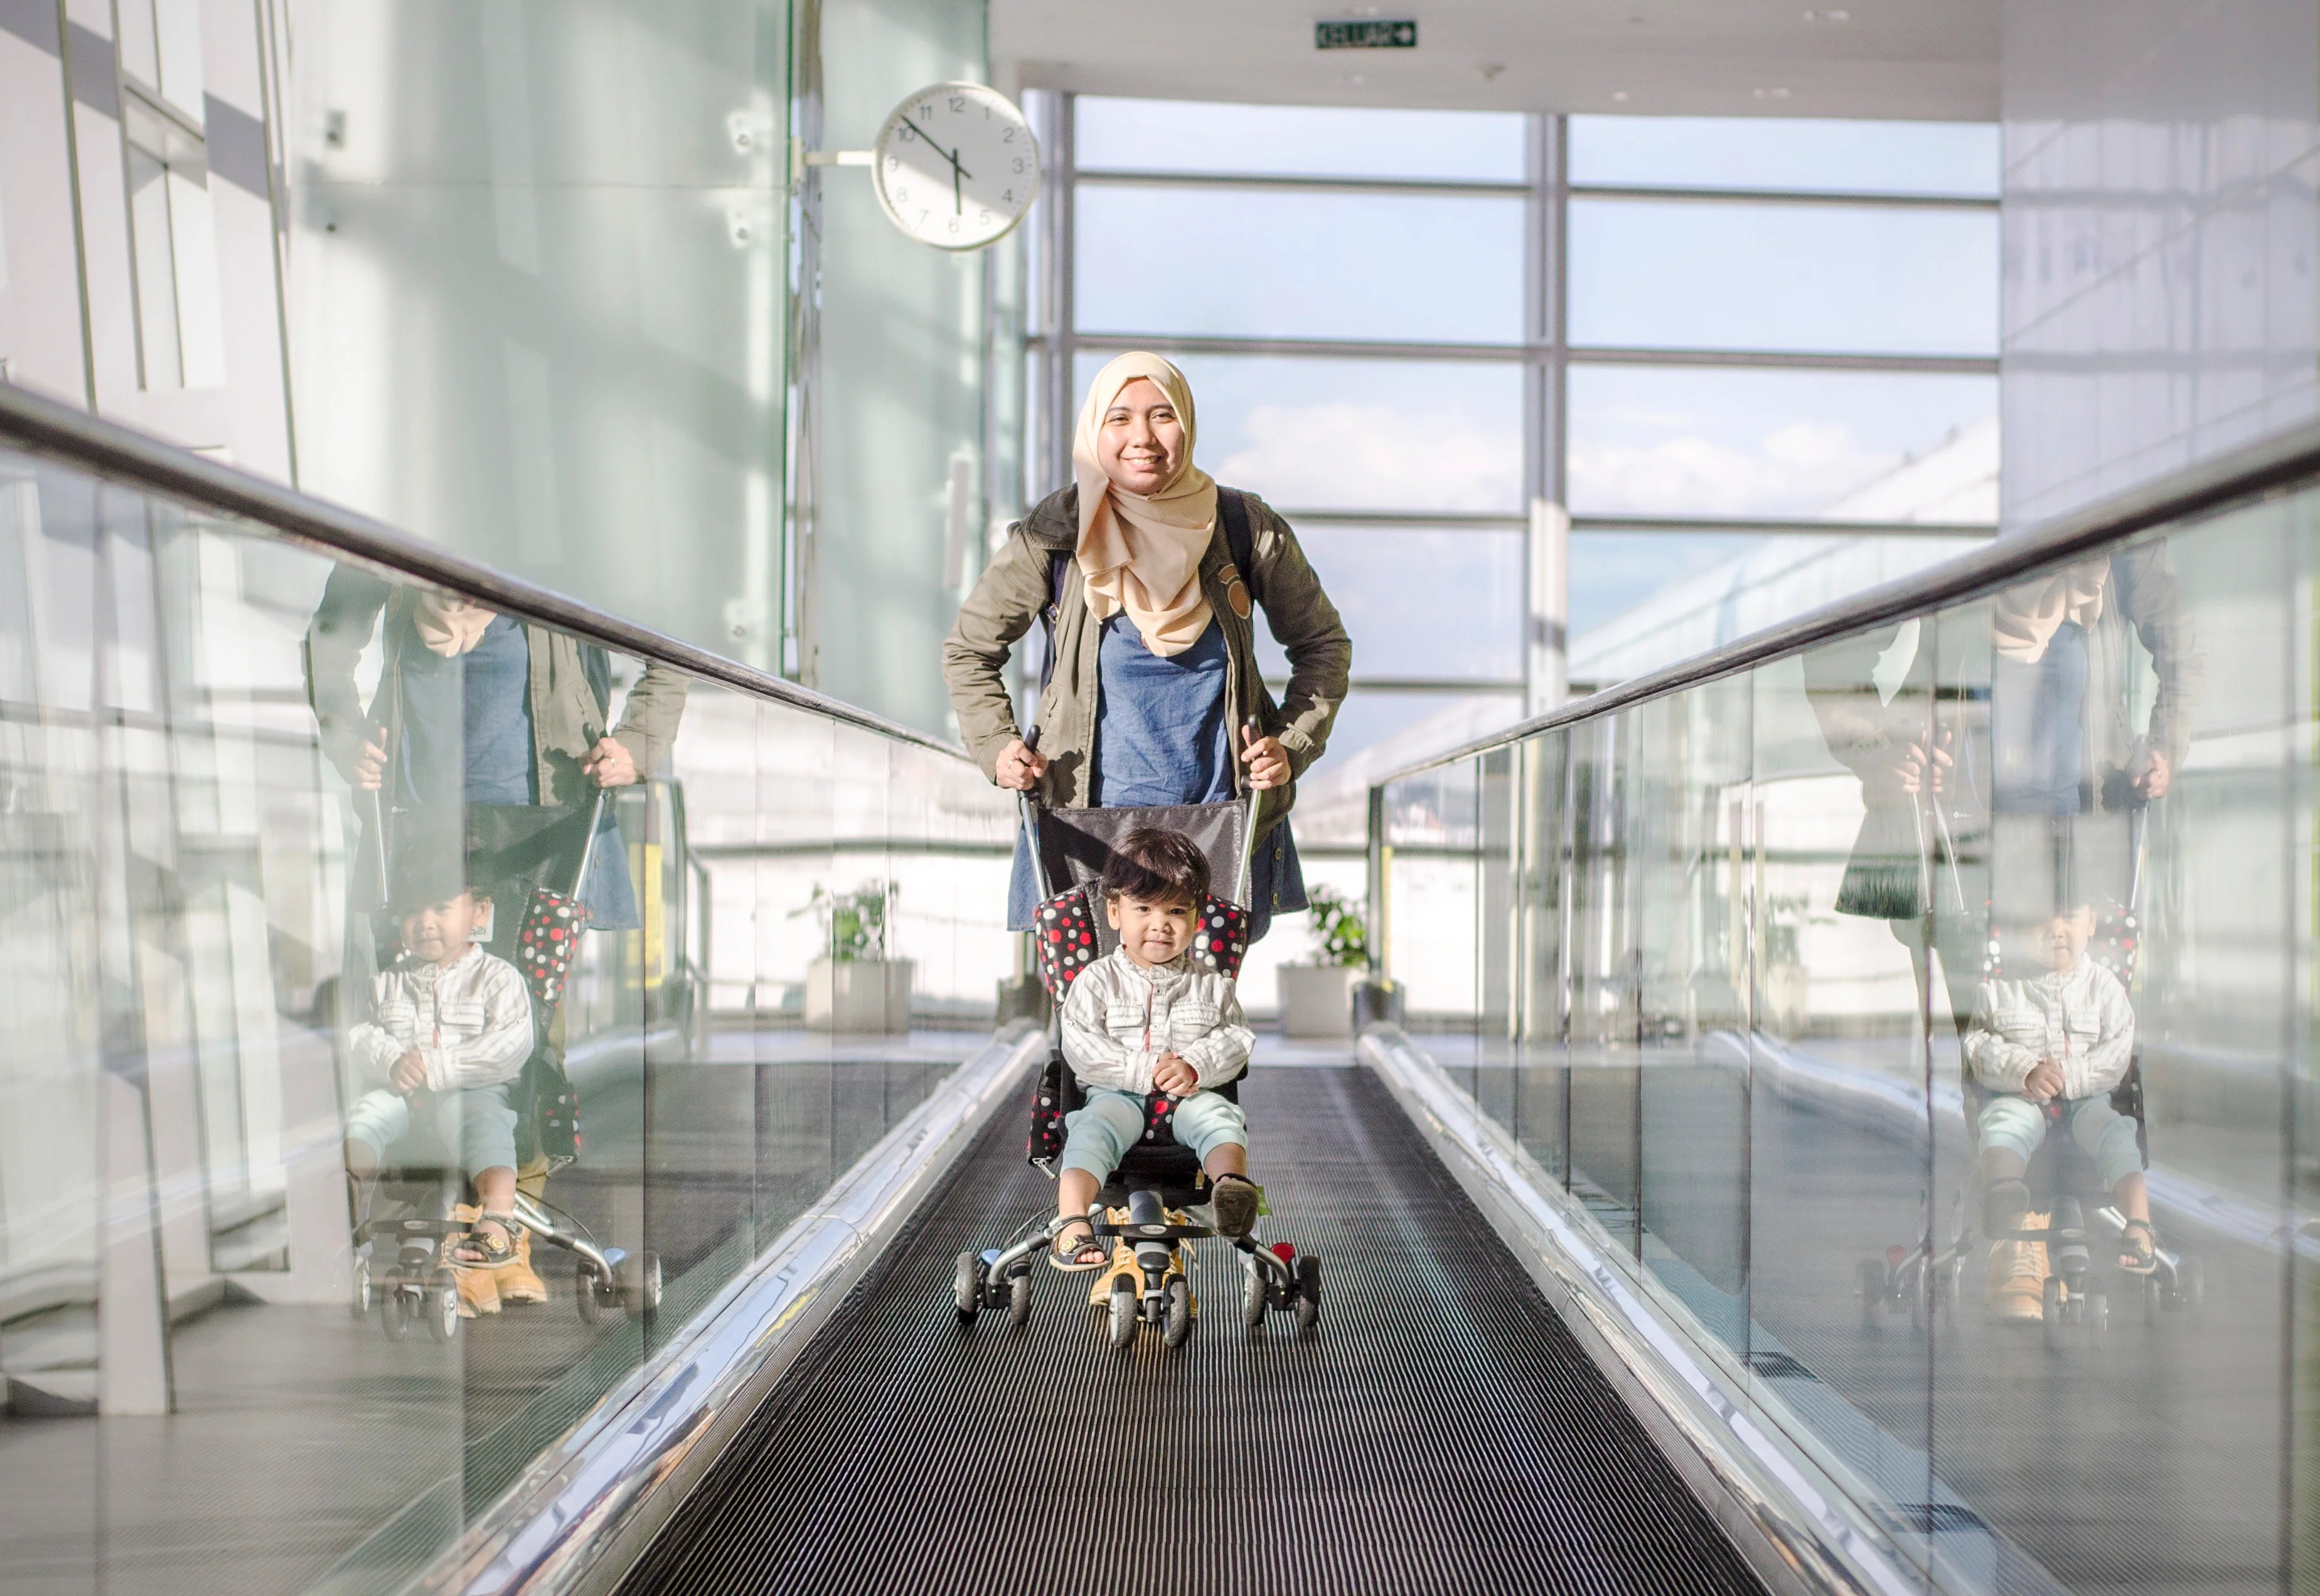 Making family travel easier with car seats and strollers